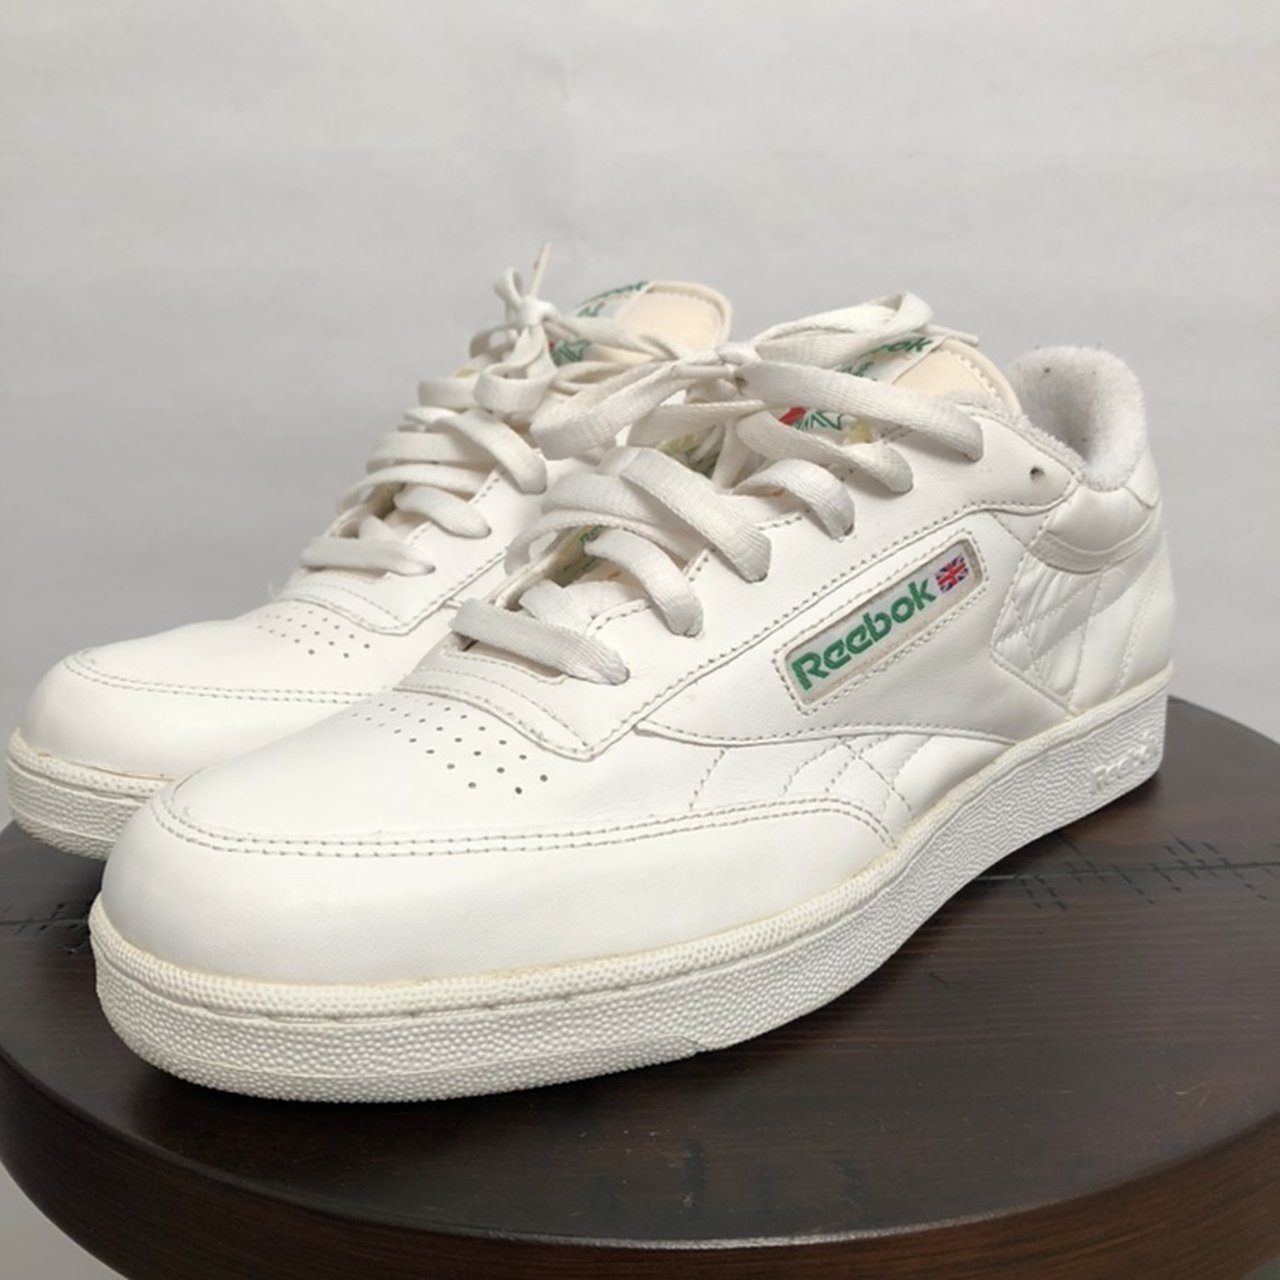 9c9418b0d74 Amazing vintage 80 s or 90 s Reebok s in the classic white I - Depop